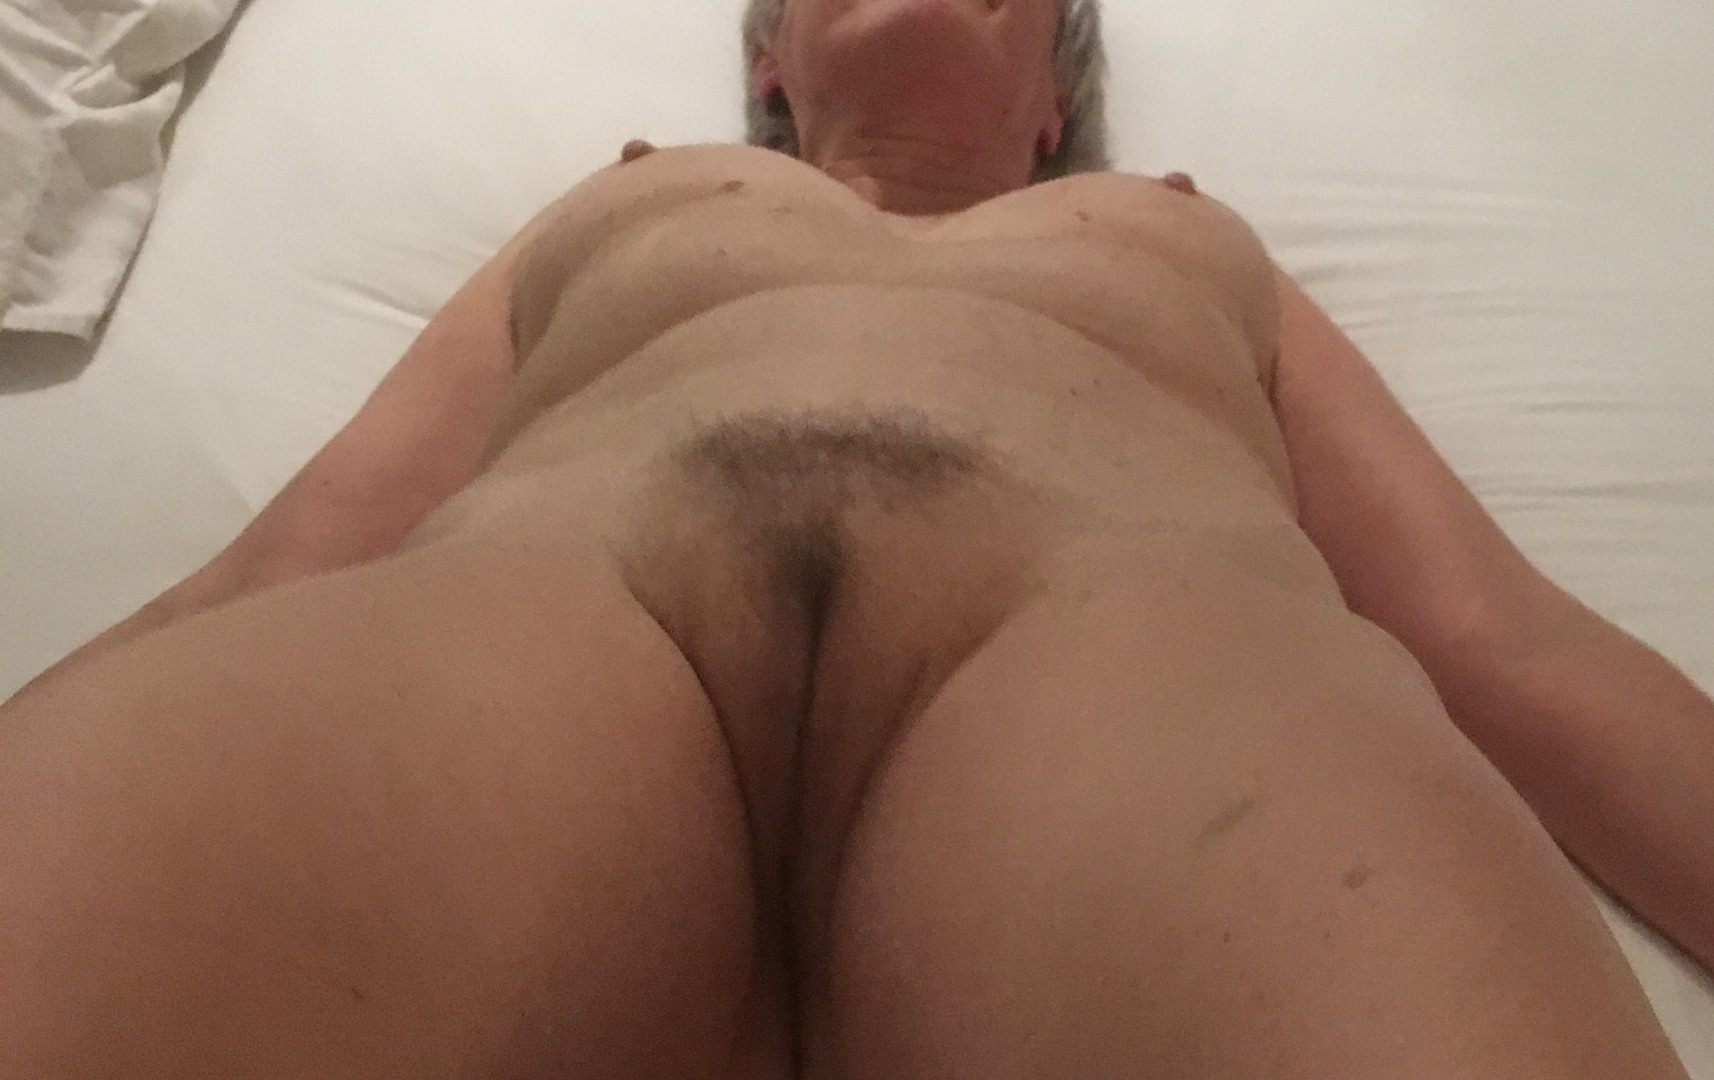 qaghbemeh millogh christmas present a beautiful big #mature #pensioner #offeringmound #hairypussy #erectnipples